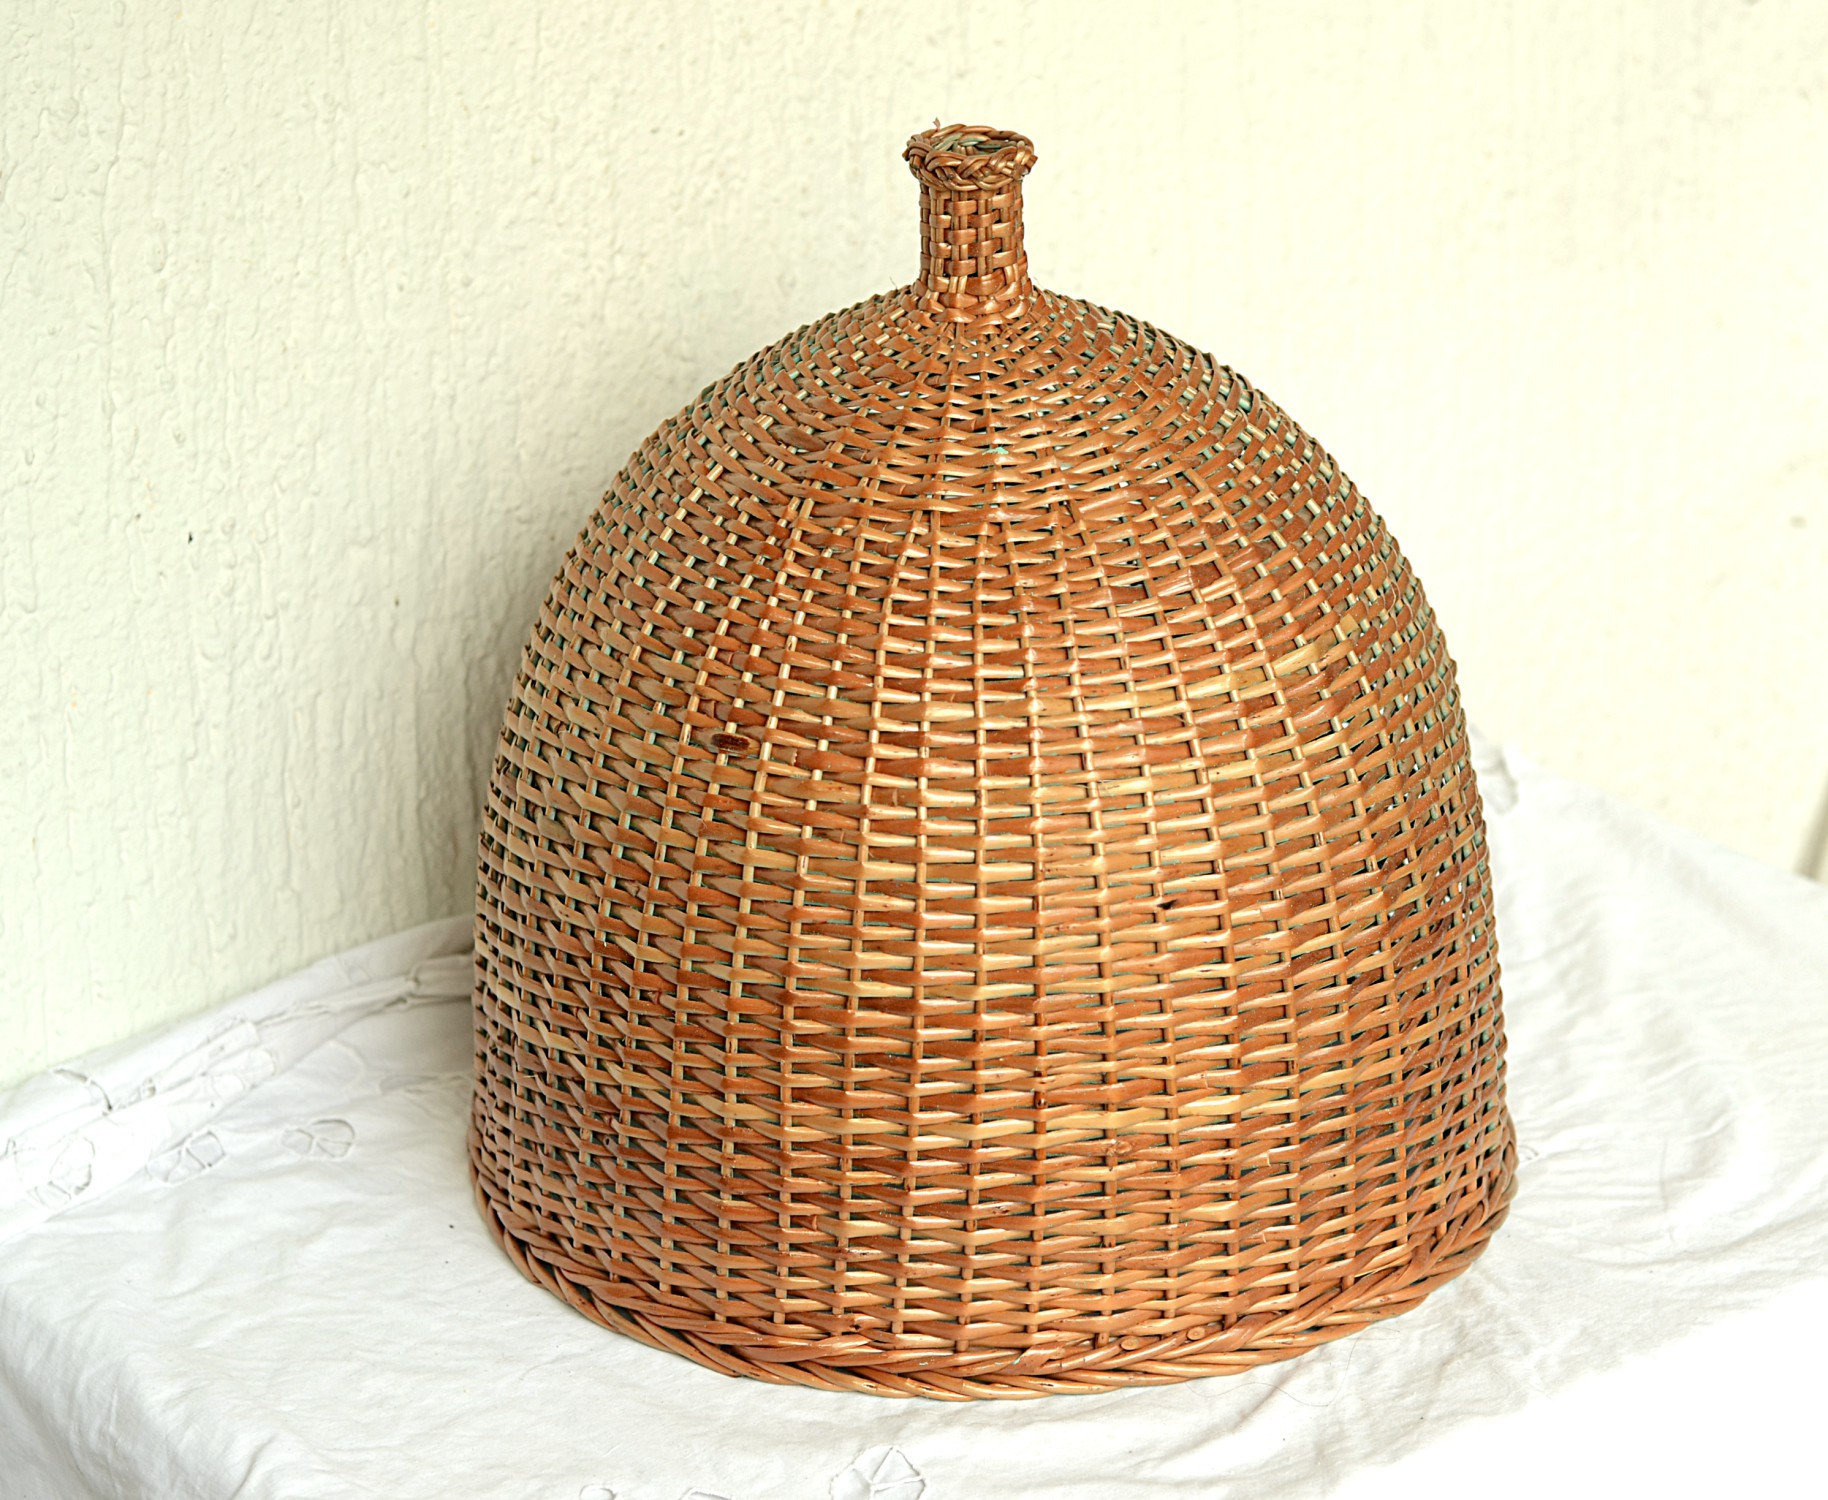 A made-to-order, tight-knit Wicker Shade from Willow Souvenir on Etsy. - $58 and up. Made in Bosnia.